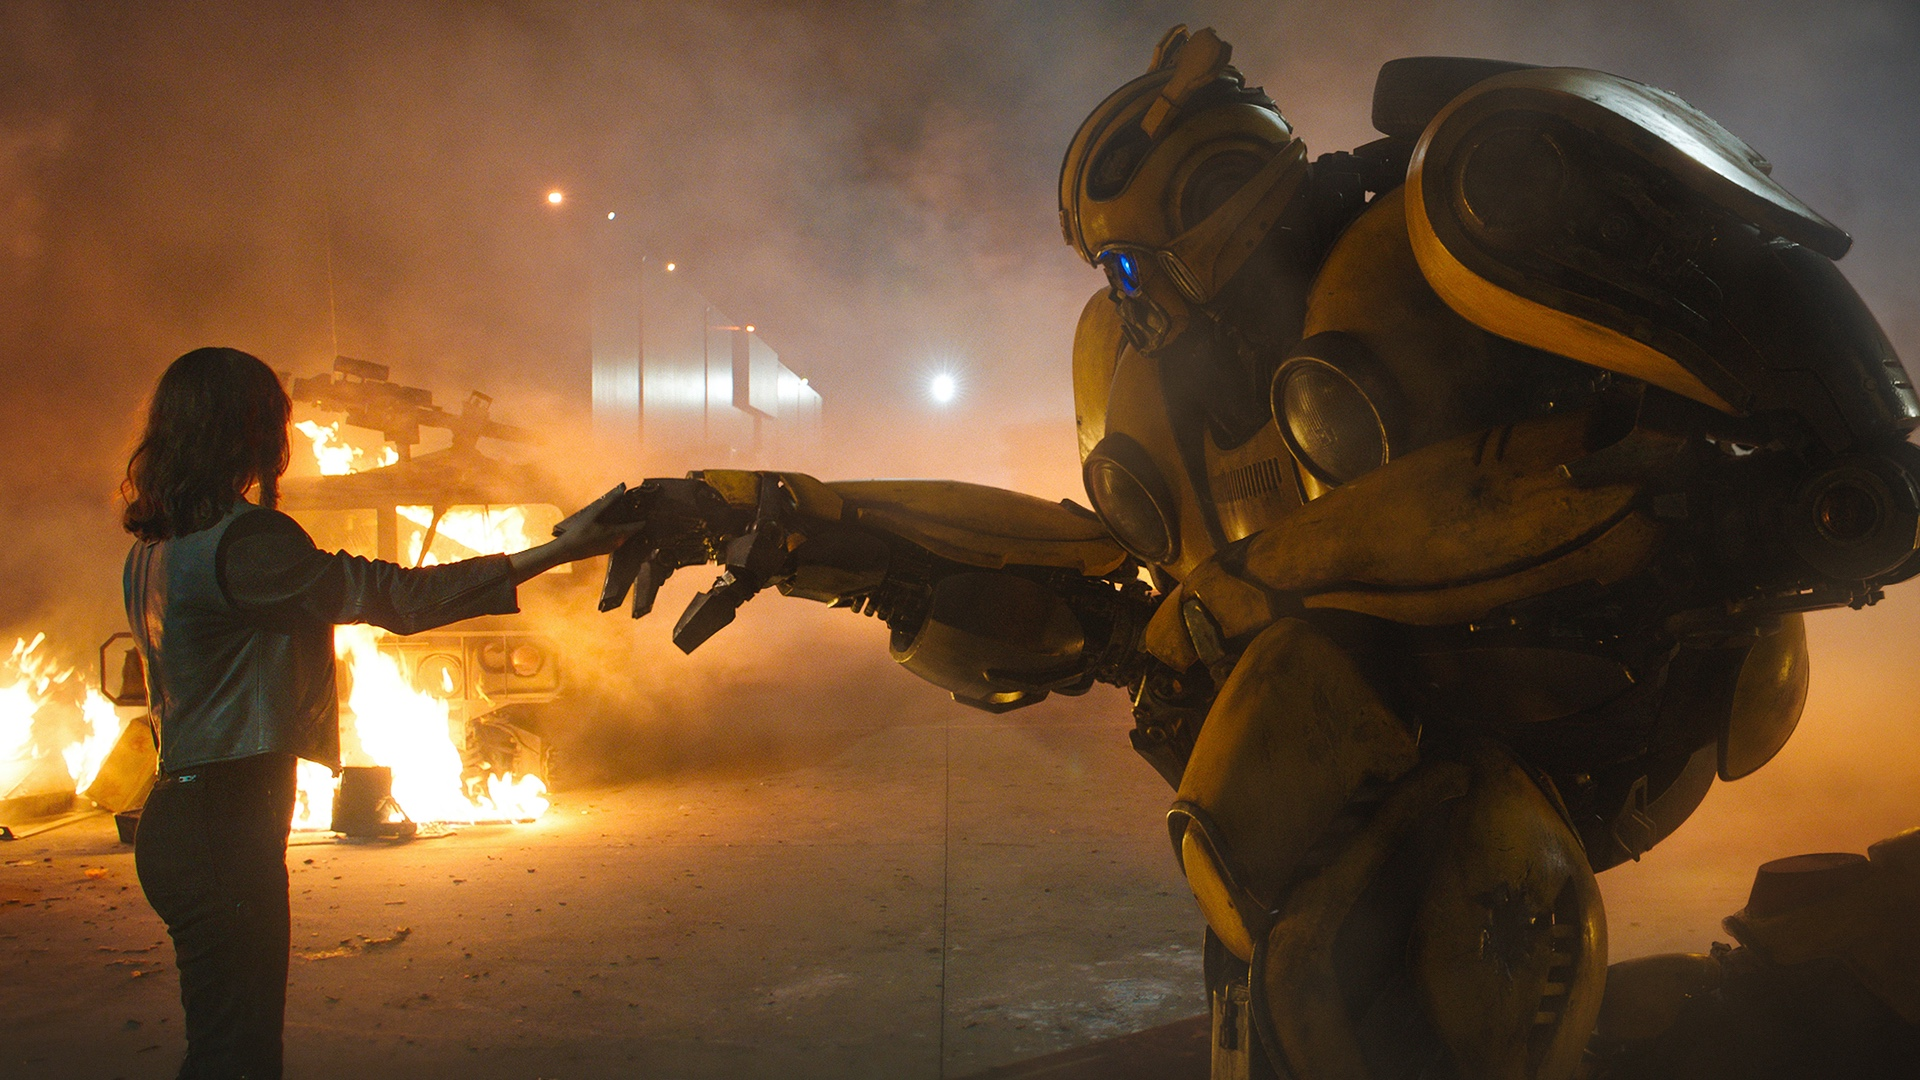 oh-no-transformers-producer-says-bumblebee-sequel-will-have-a-little-more-bayhem-social.jpg